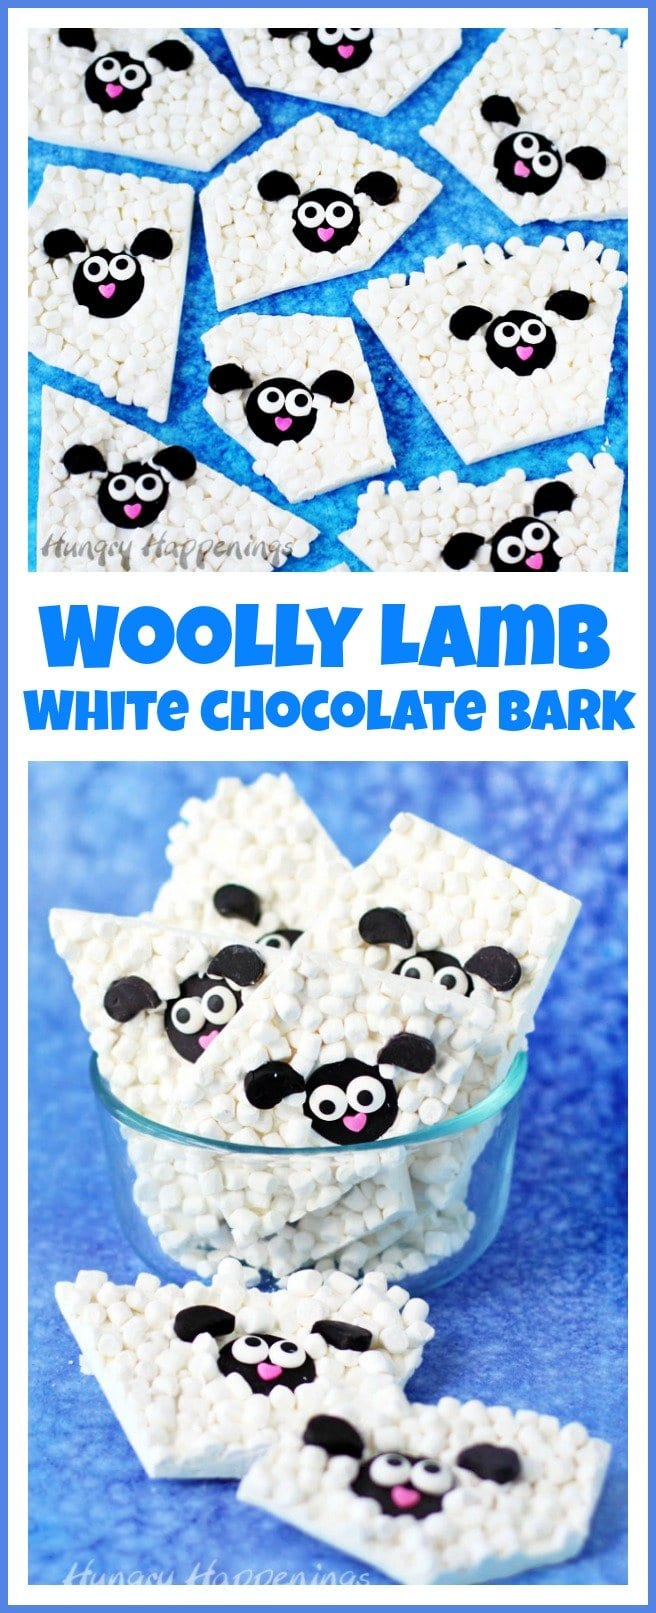 Here's an easy Easter treat to make for your baskets. Woolly Lamb White Chocolate Bark can be made in less than 20 minutes and it's so cute.